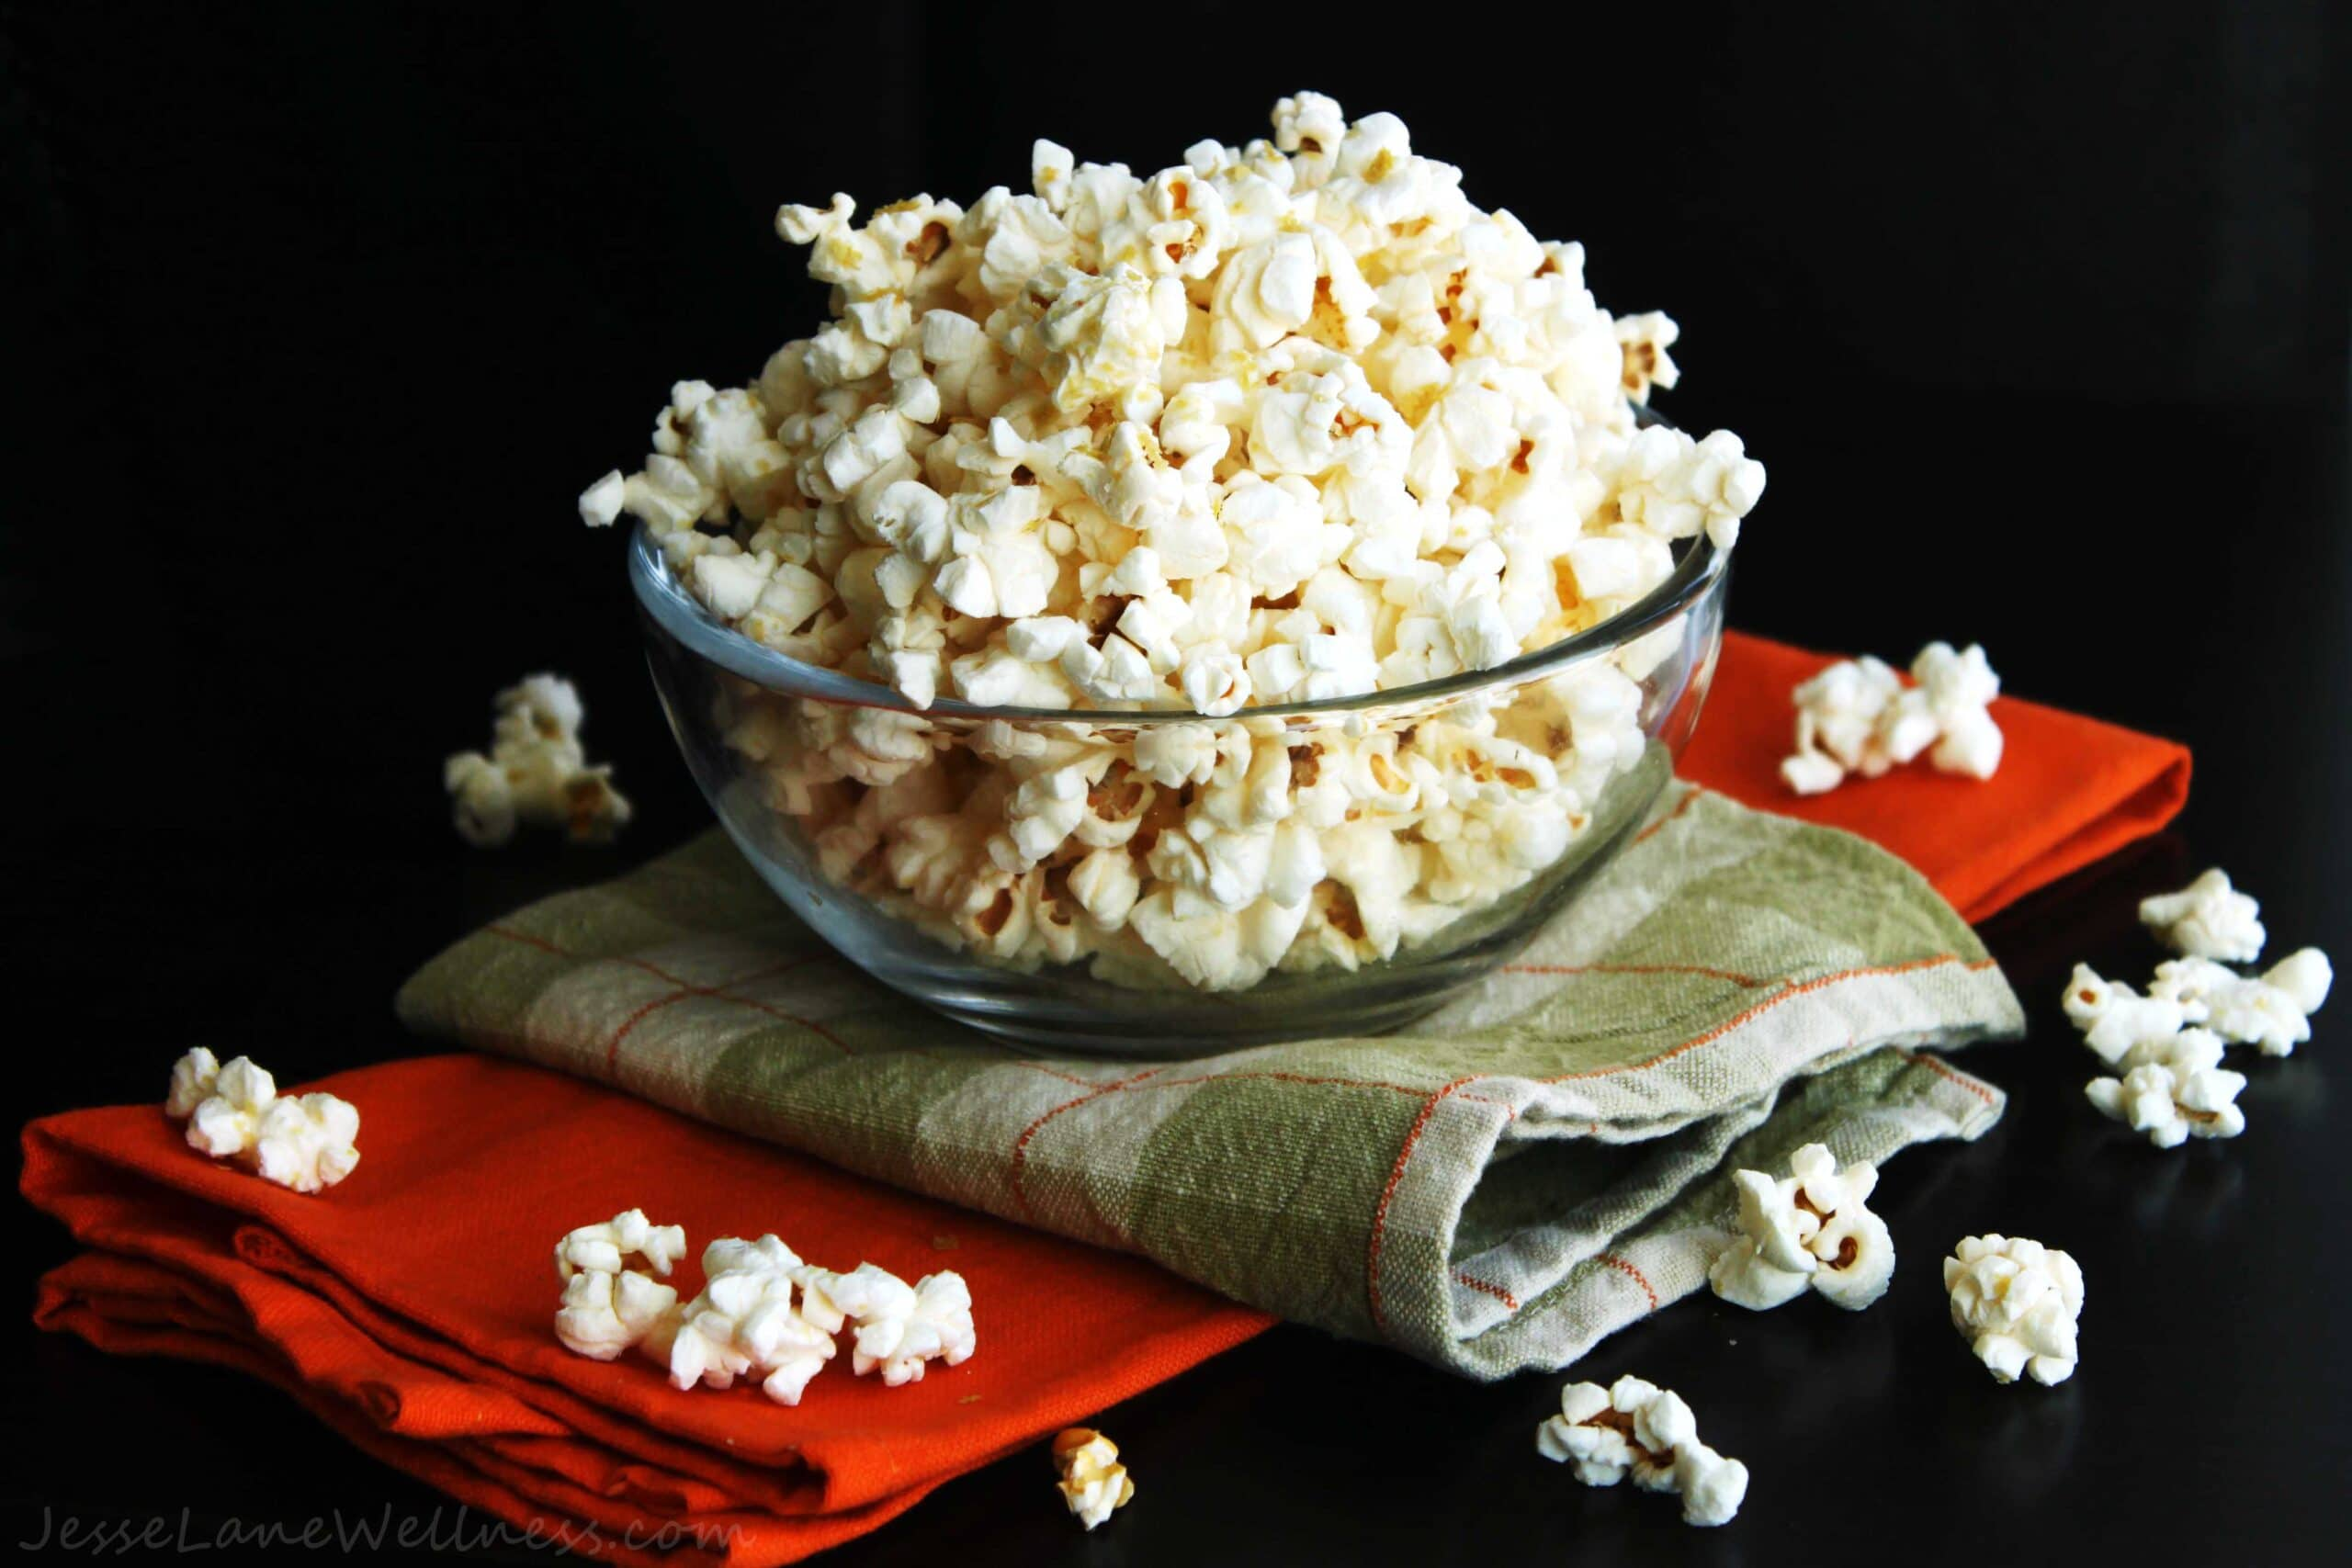 Cheesy Popcorn by @JesseLWellness #vegan #dairyfree